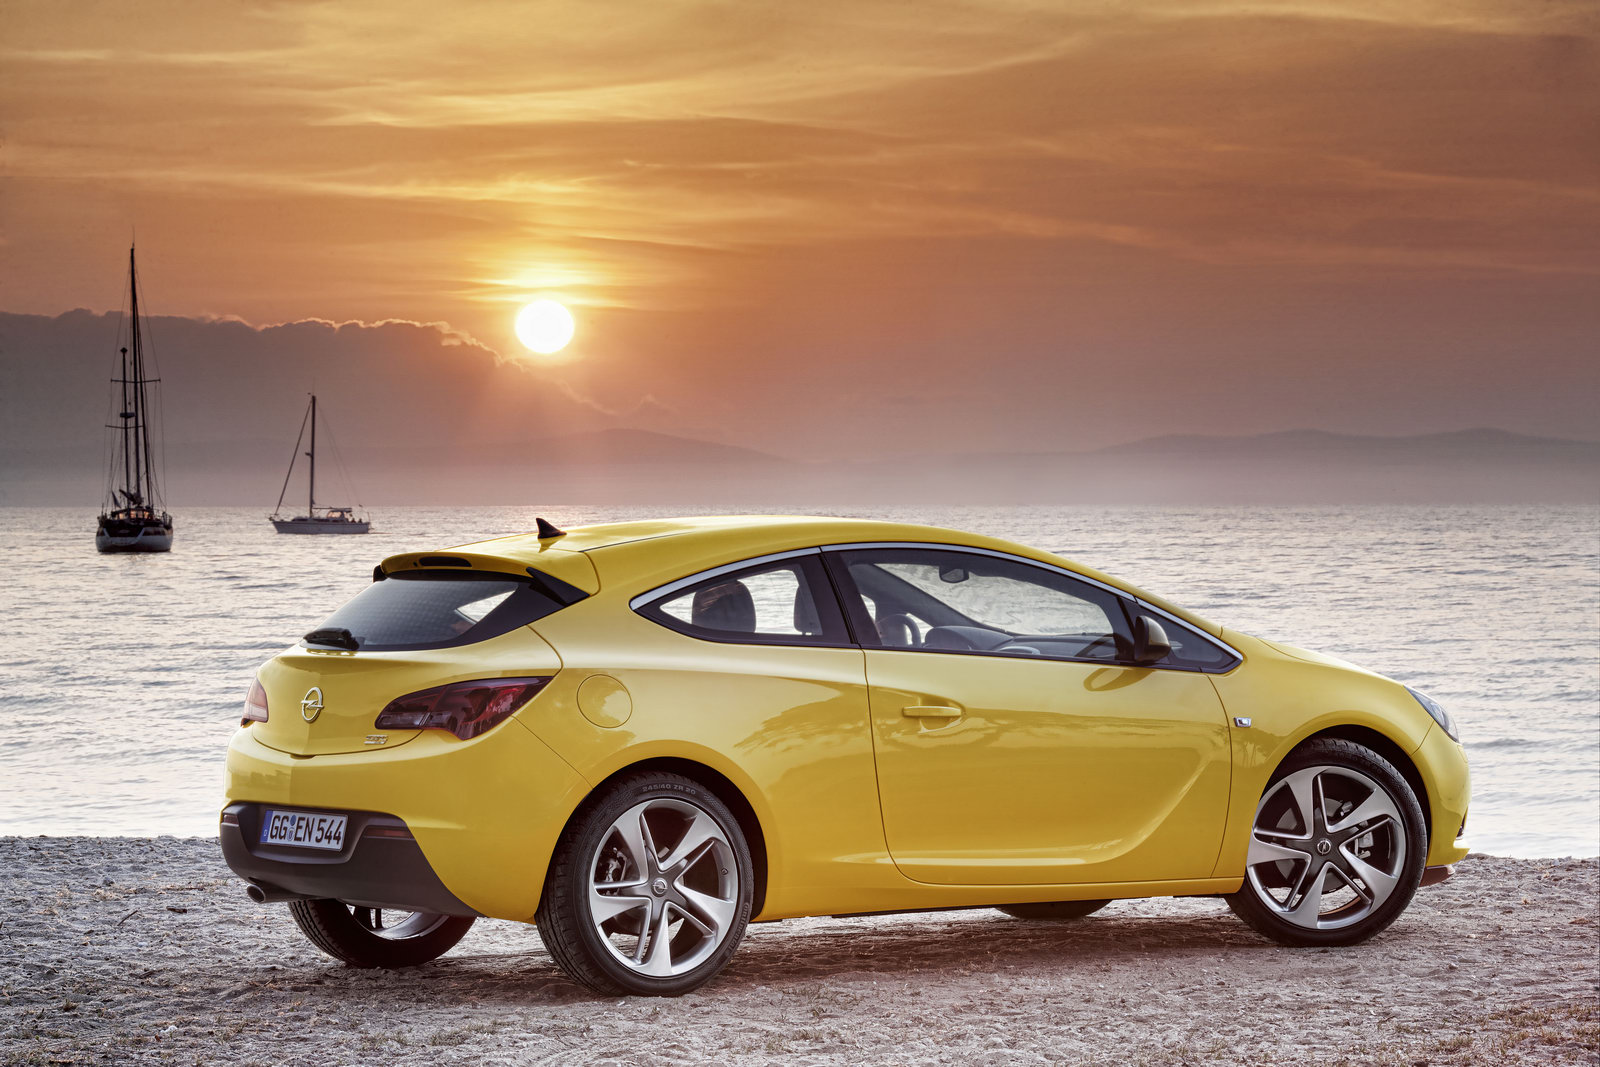 Opel Astra GTC 3 2012 Astra GTC A Car Review